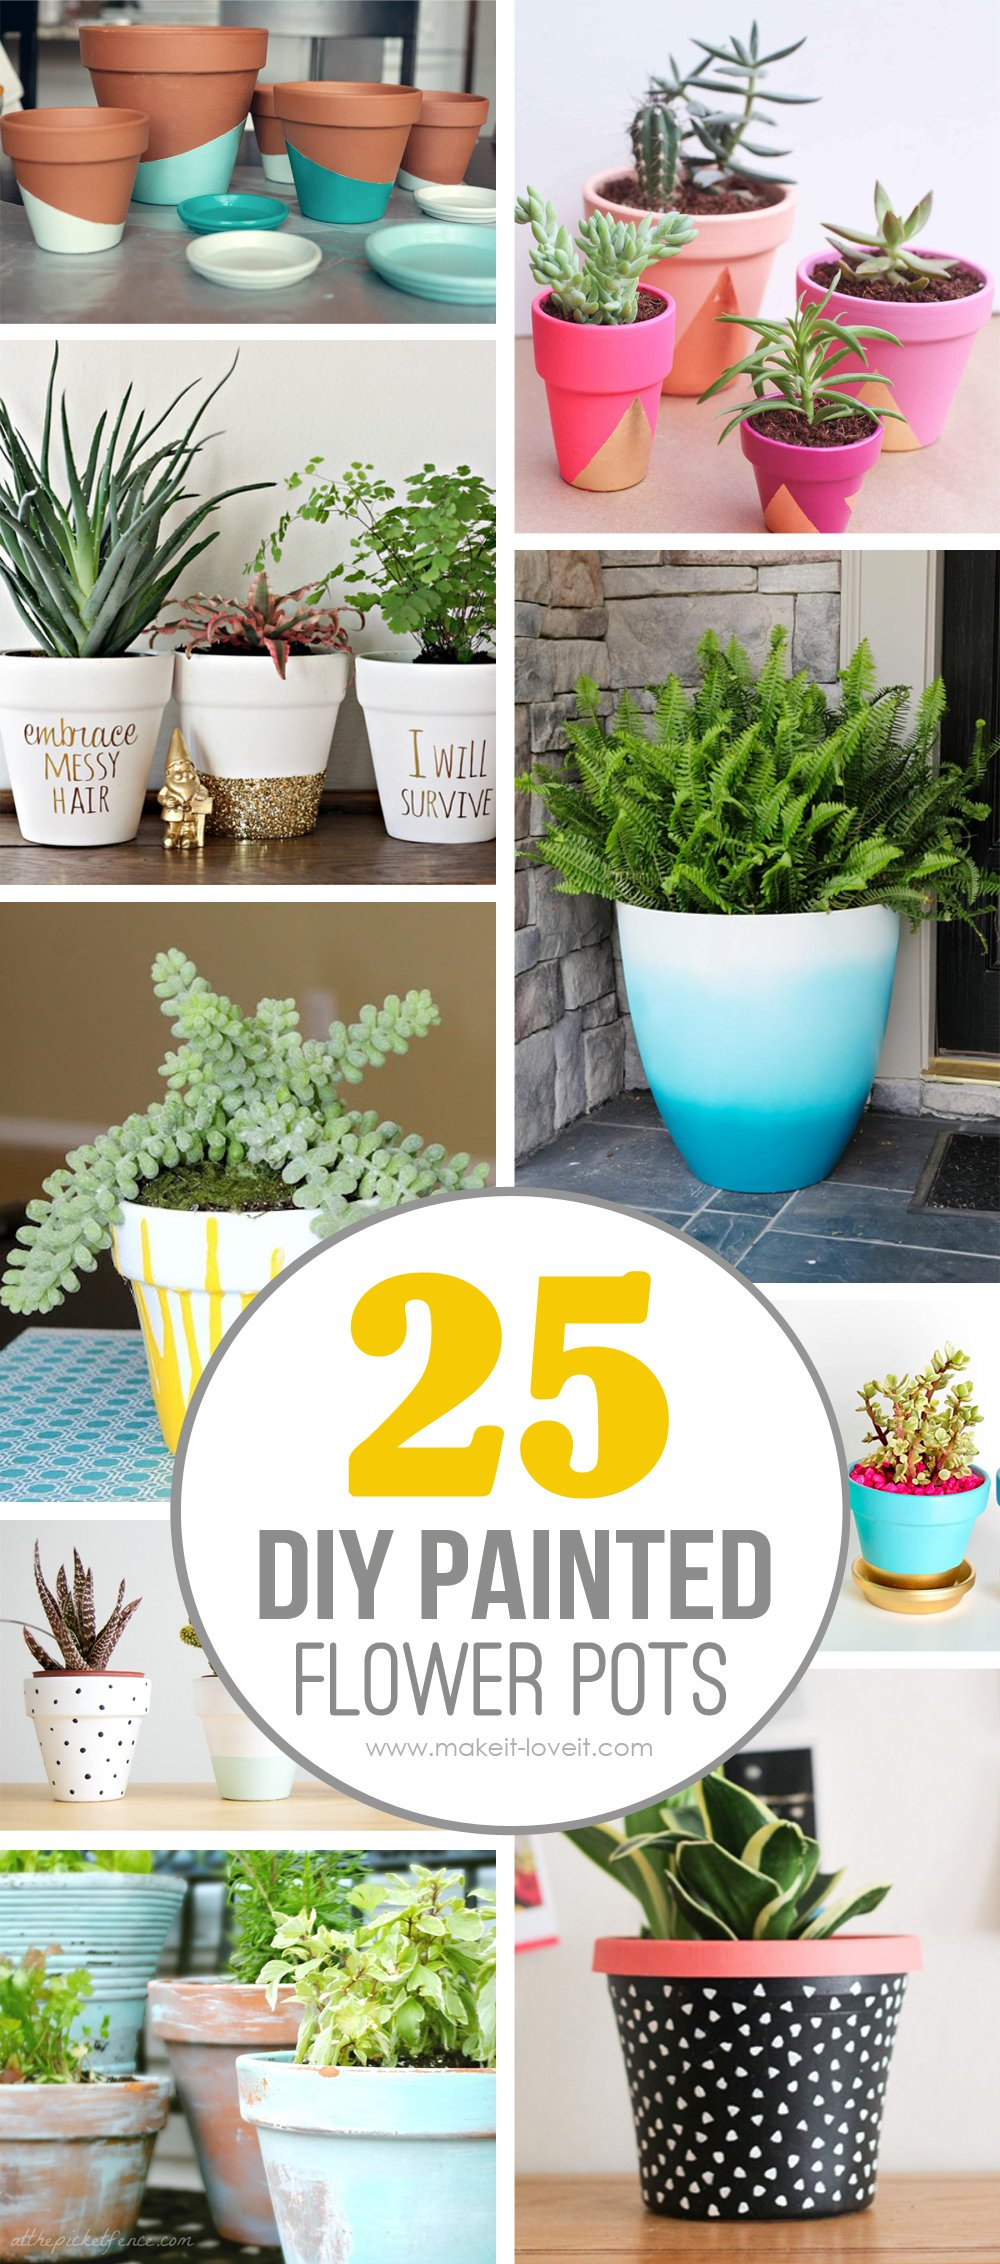 25 Diy Painted Flower Pot Ideas You Ll Love Via Make